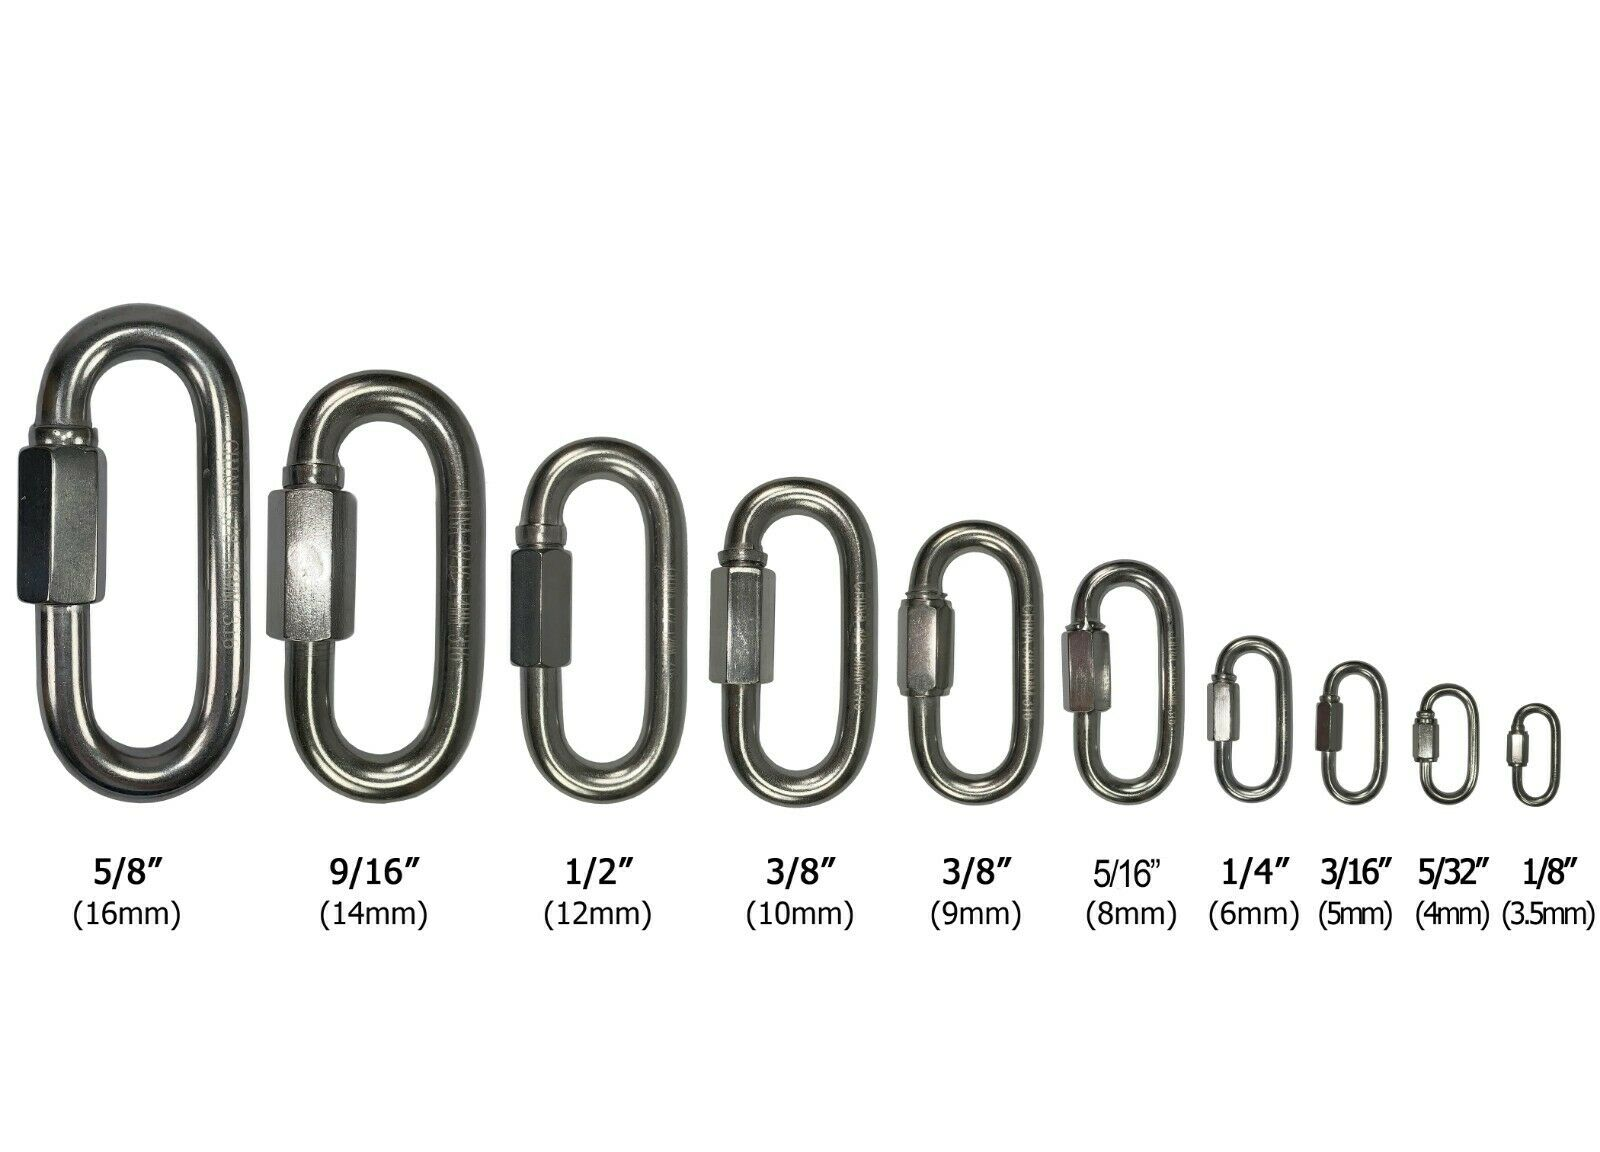 1//2 Spring Snap Hook Carabiner with Eyelet T316 Marine Grade Stainless Steel: 1 5 20 10 20 pcs 2